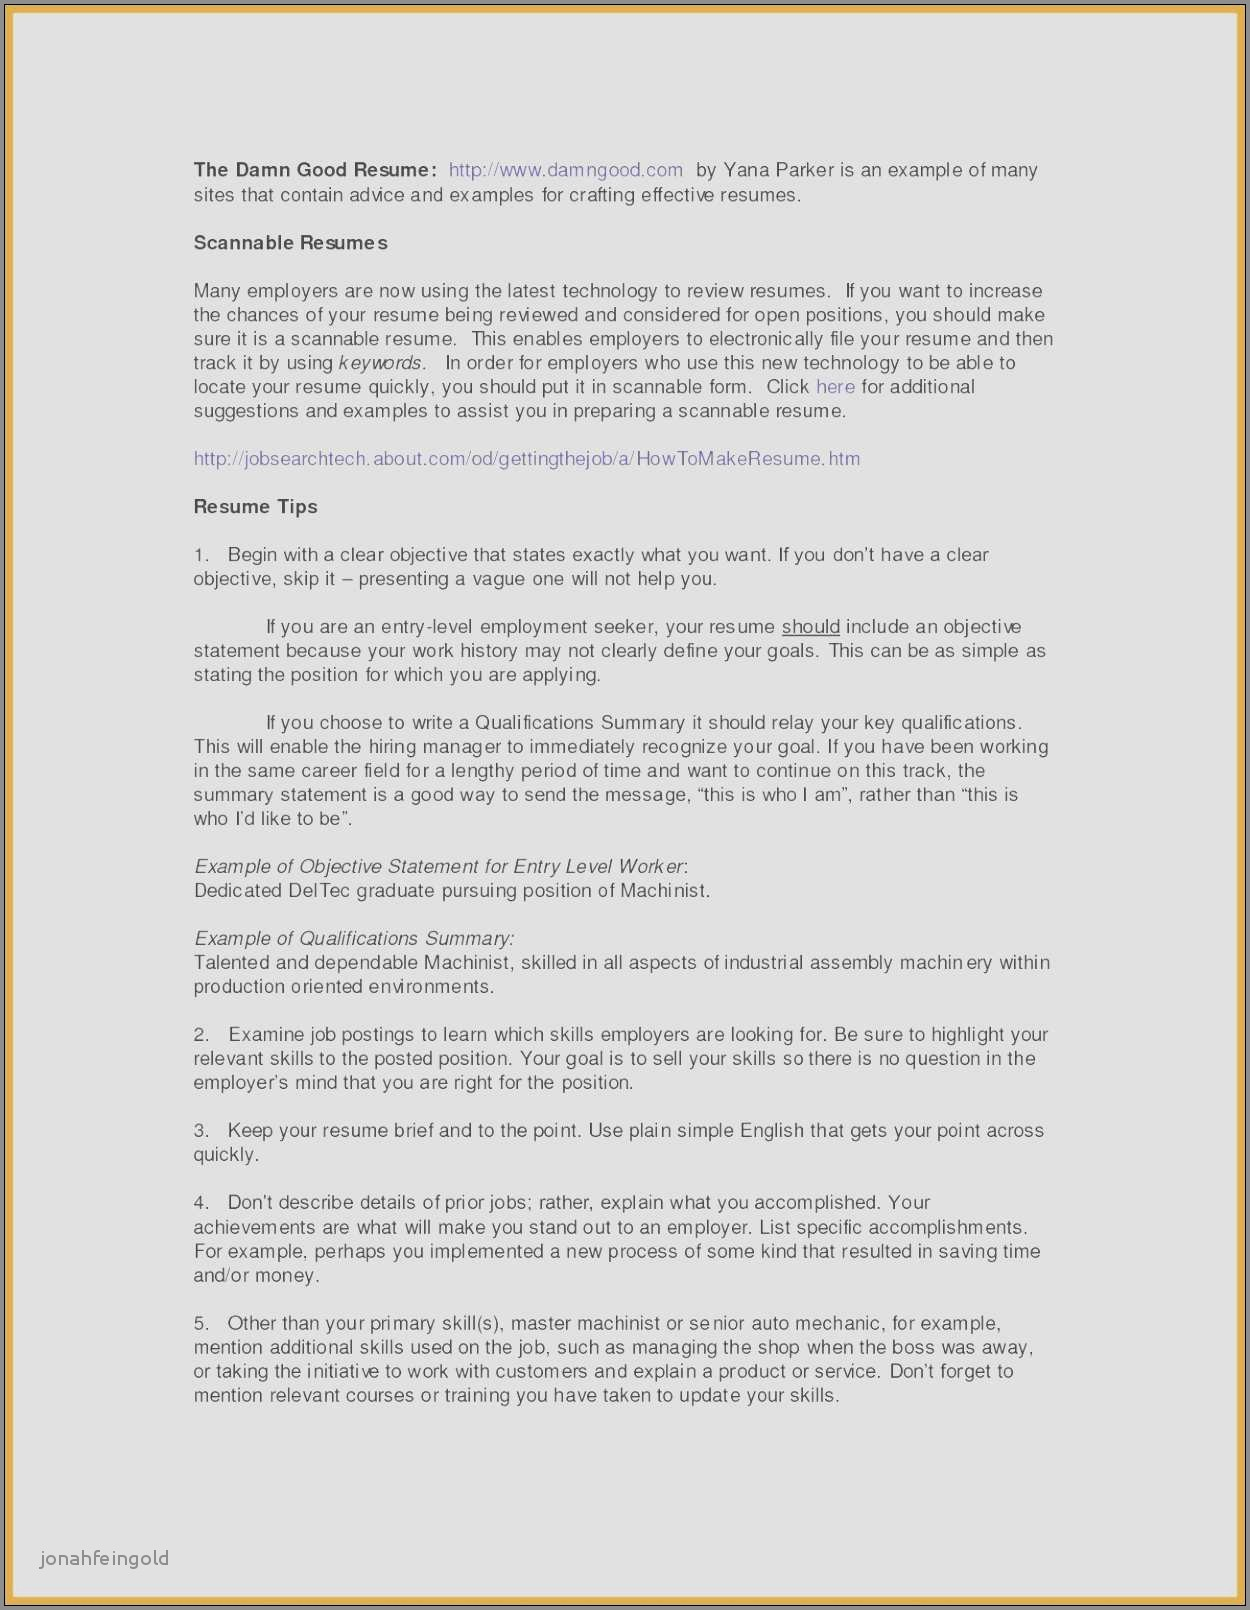 resume samples for career changers example-Career Change Resume Samples Best Resume Examples For Career Changers Lovely Career Change Resume 19-j